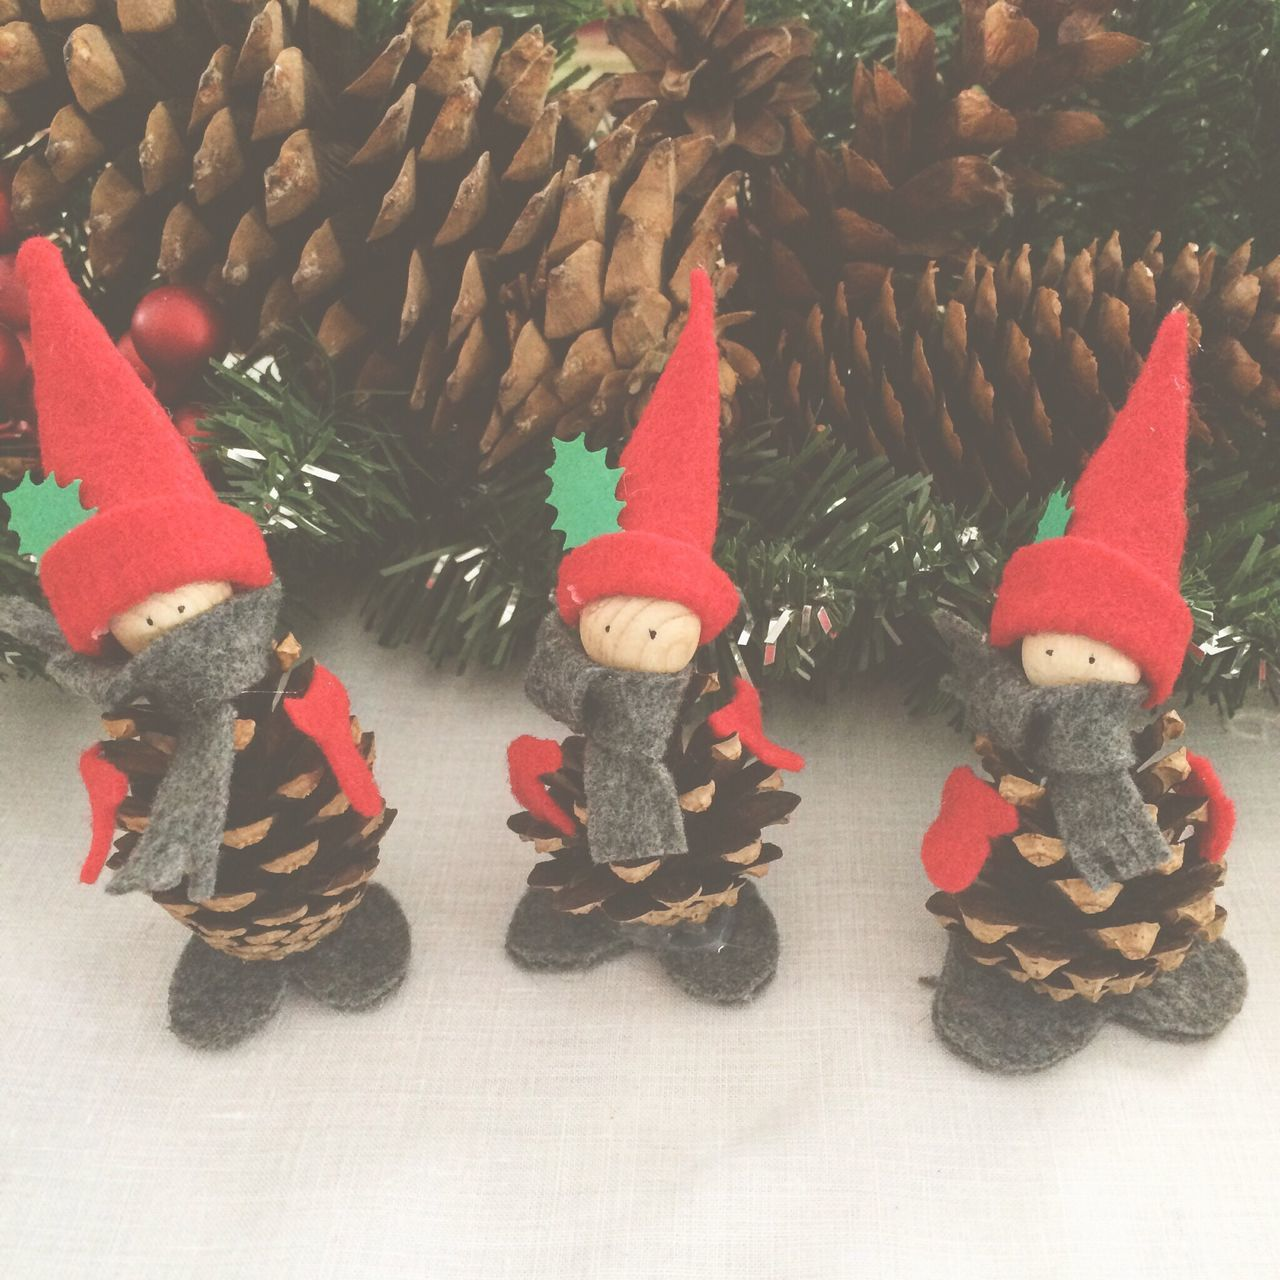 Christmas Christmas Decoration Close-up Celebration No People Day Pinecone Craft Christmas Ornament Elf Holiday Red Hat Cute Christmas Wintertime Decoration Evergreen